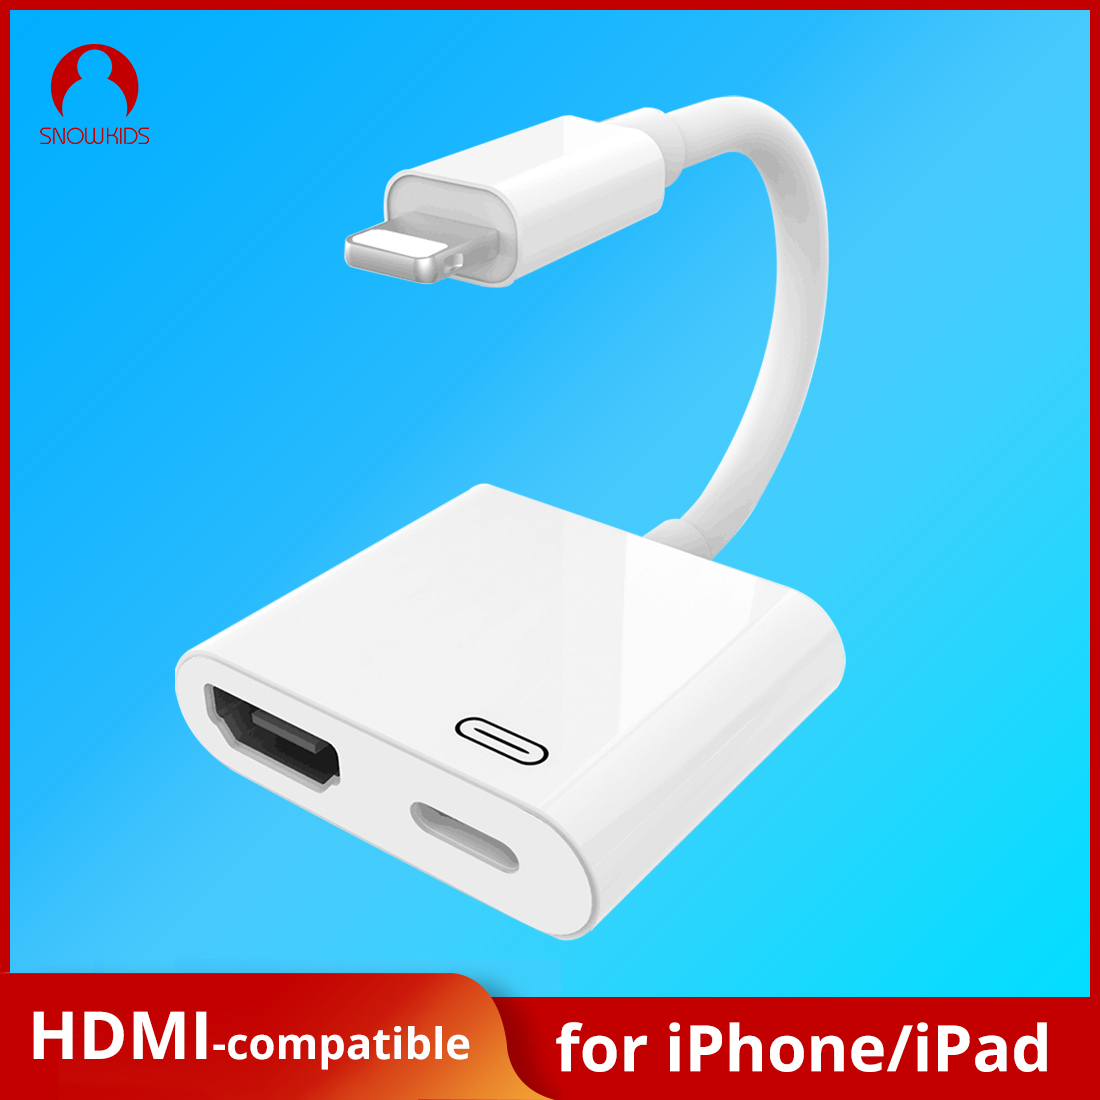 Snowkids Phone HDMI-compatible Adapter for Ligtning to HDMI-compatible Adapter 4K  iphone hdmi-compatible adapter hdmi extender